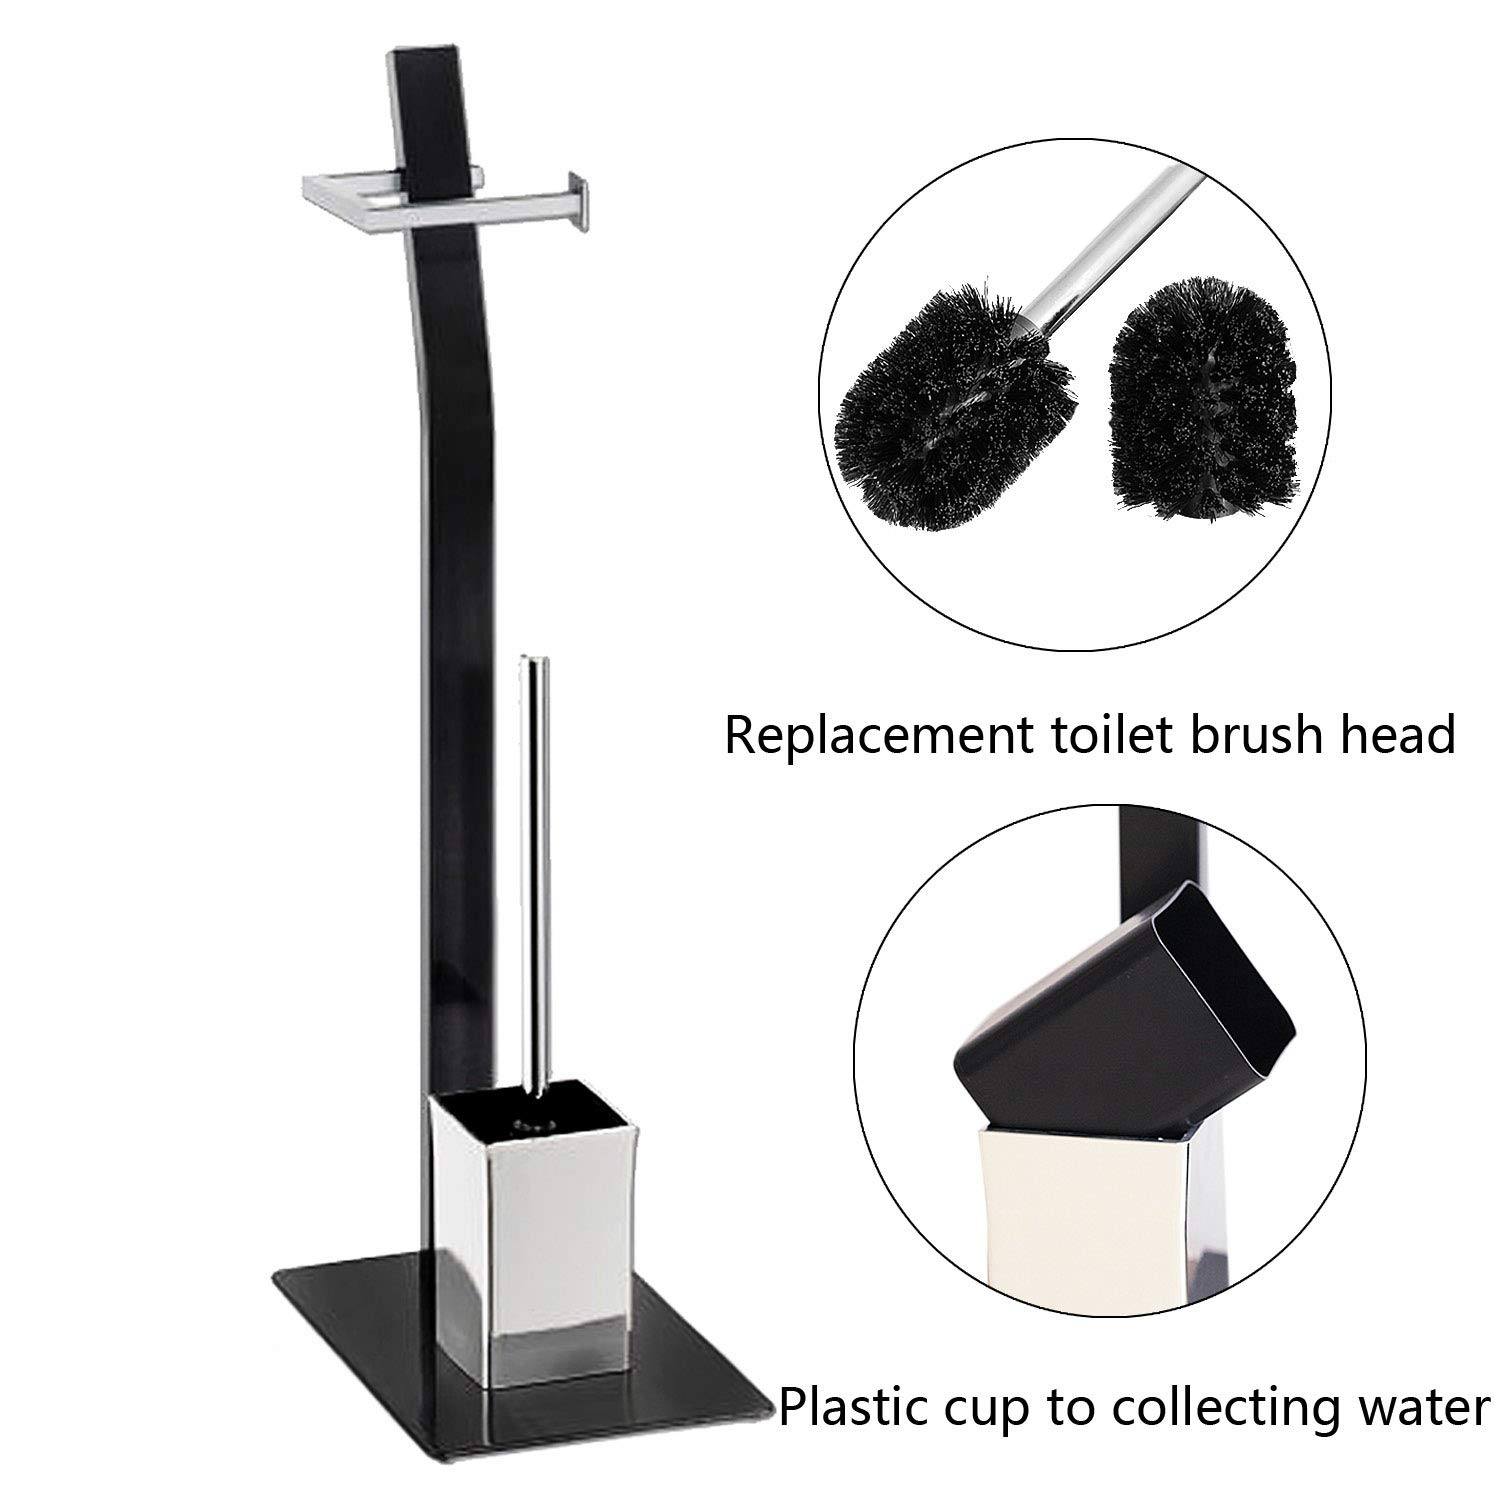 Free Standing Toilet Paper Holder Black Tissue Industrial Bathroom Toilet Brush And Holder Set Stand Silver by FOYUEE (Image #3)